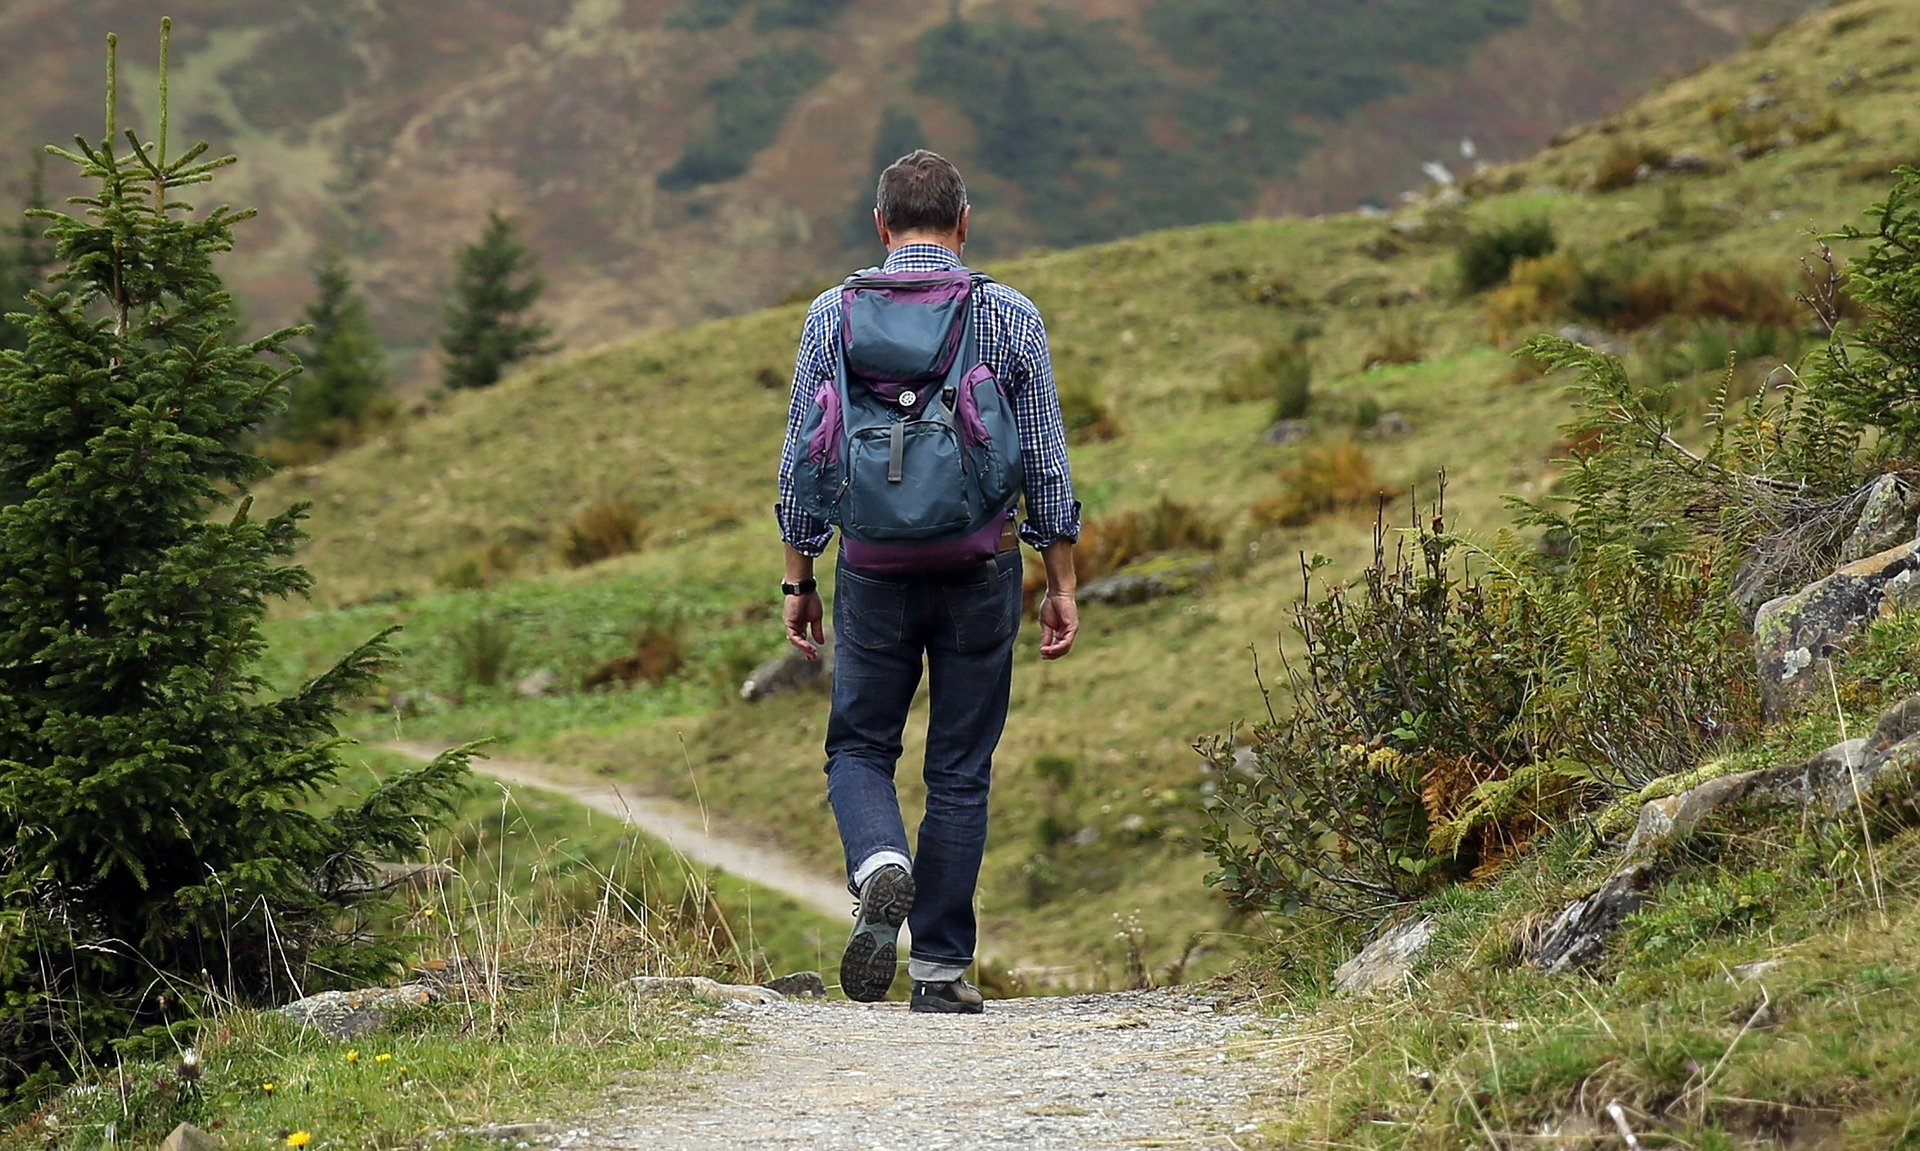 Man Wandering in nature with backpack